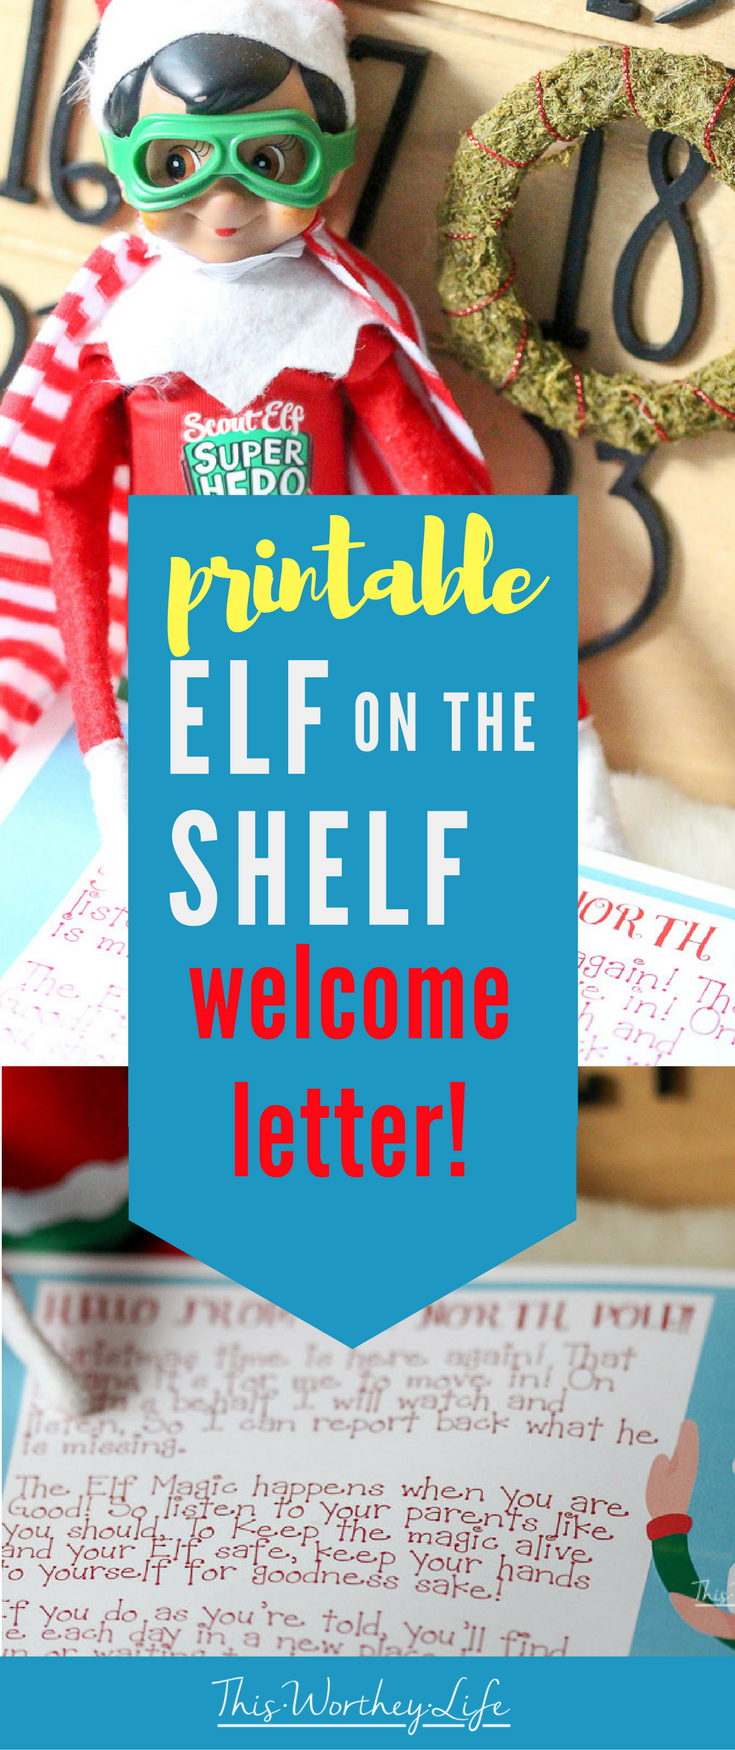 graphic about Elf on the Shelf Letter Printable titled Elf upon the Shelf Welcome Letter Printable - This Worthey